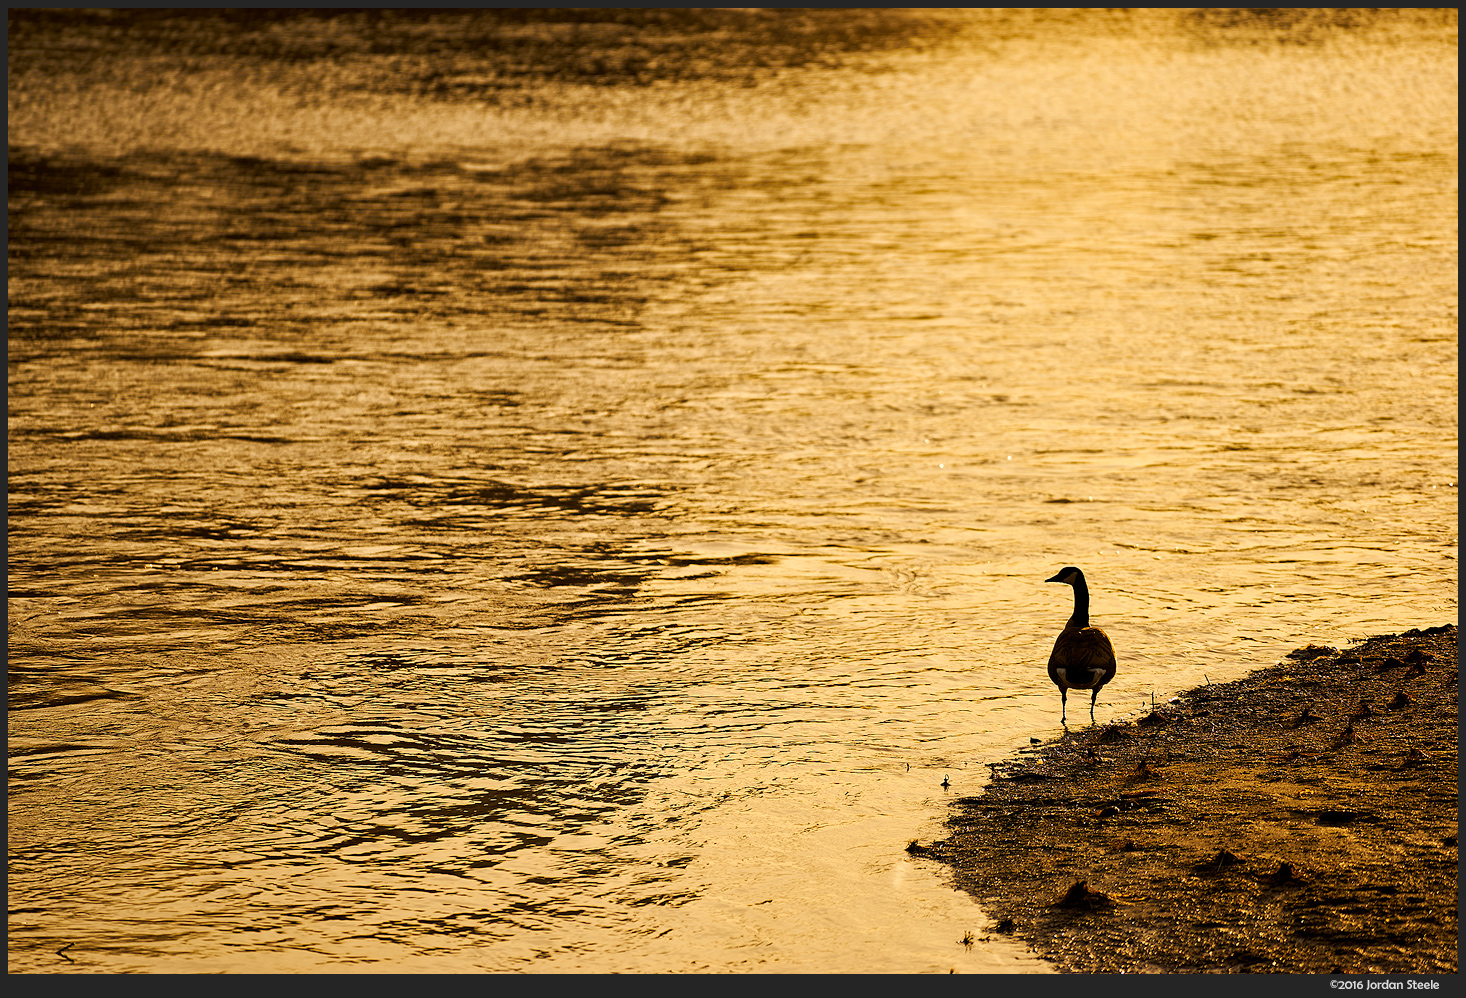 Goose at Sunrise - Sony A7 II with Sony FE 70-200mm f/4 G OSS @ 200mm, f/4